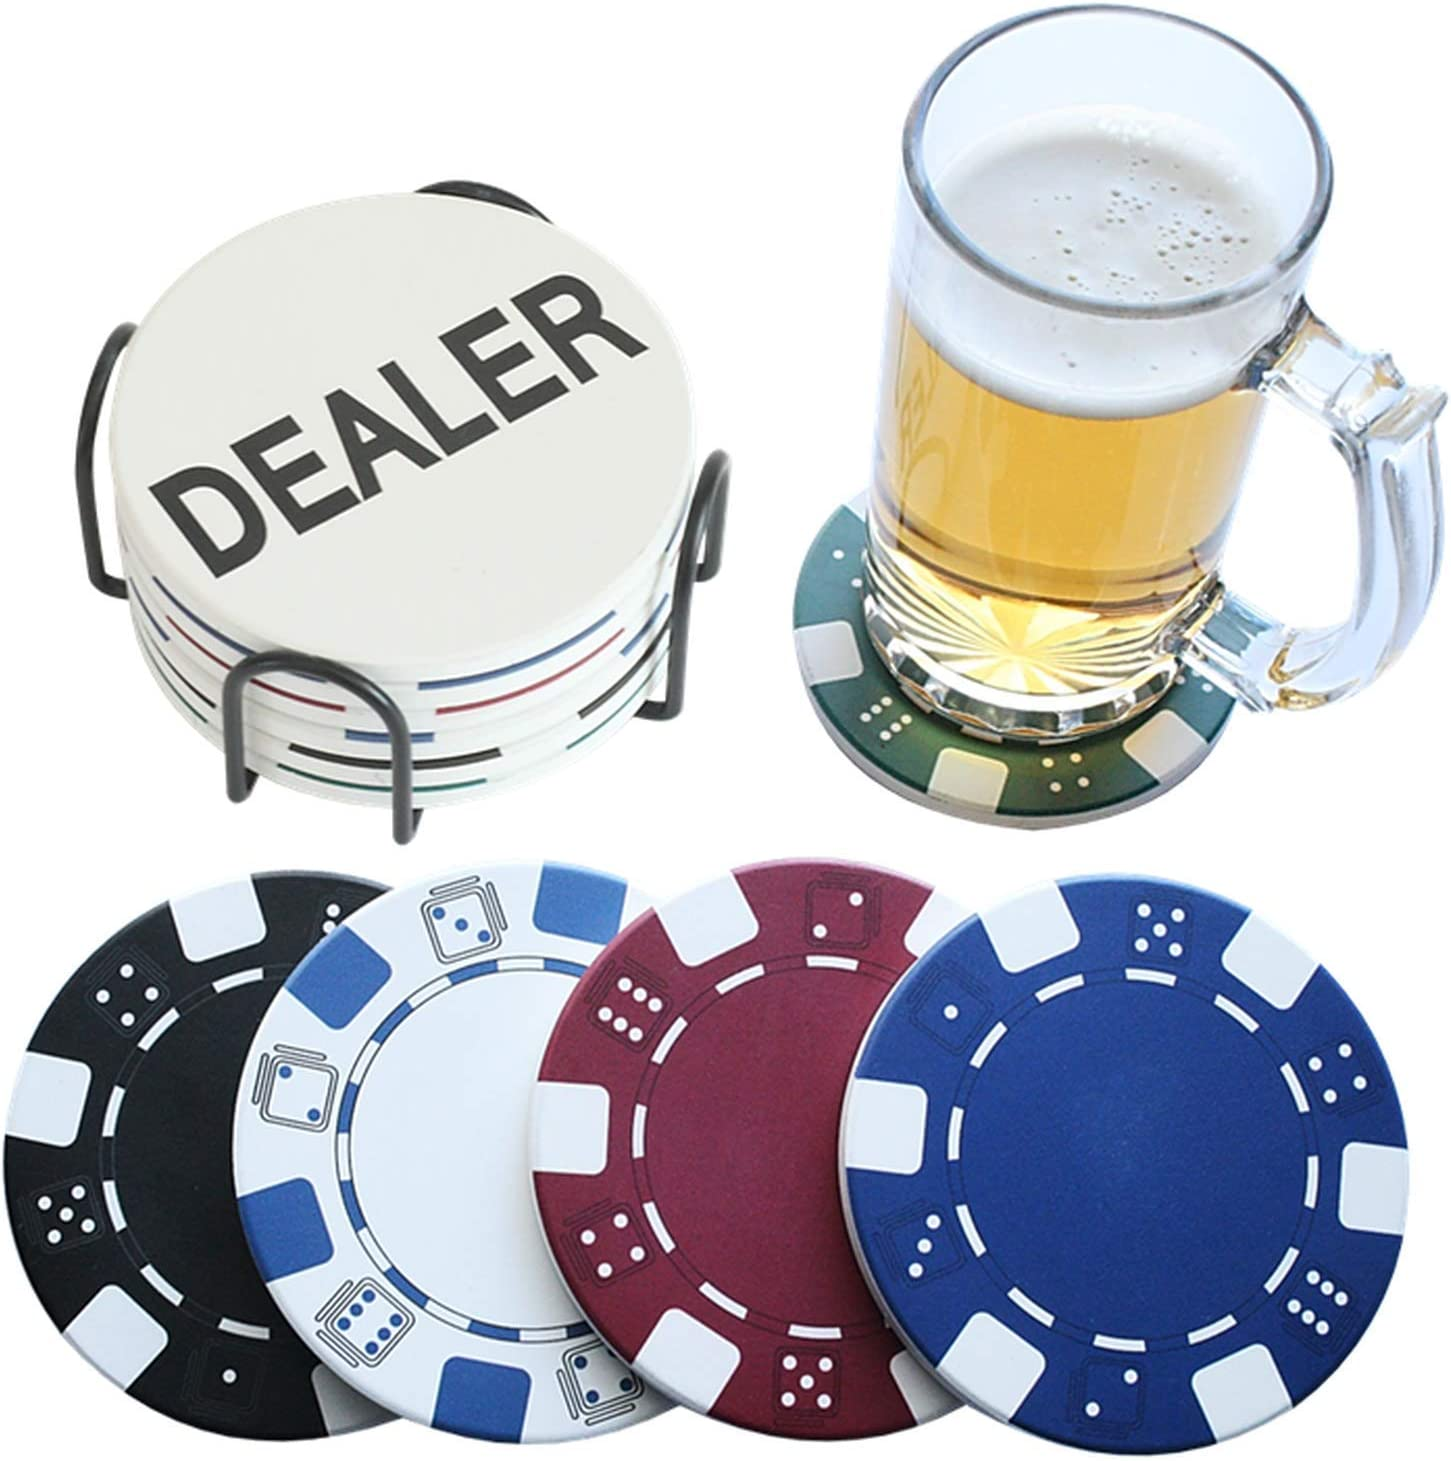 PANCHH Man Cave Coasters with Holder for Drinks & Manly Décor - Cool Kitchen Stuff, Best Housewarming & Birthday Gifts for Men, Guys, Male Best Friend – Casino Theme, Fun Poker Coasters- Home Bar